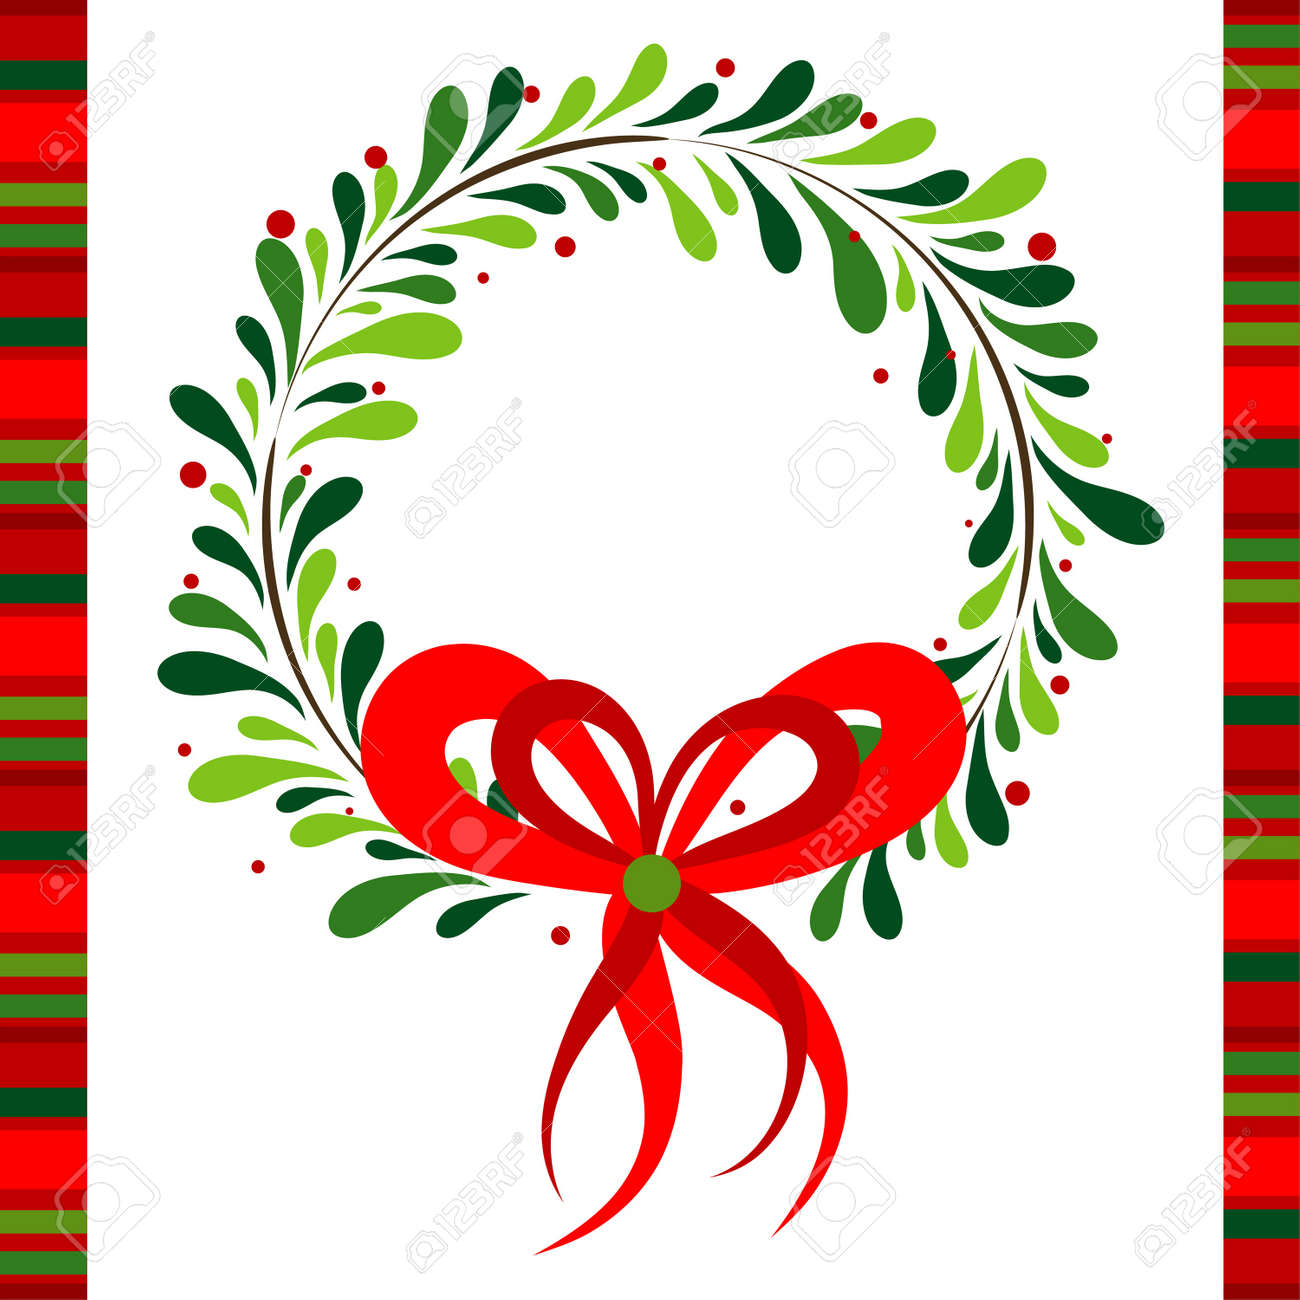 Template christmas greeting card, vector illustration Stock Vector - 16683776